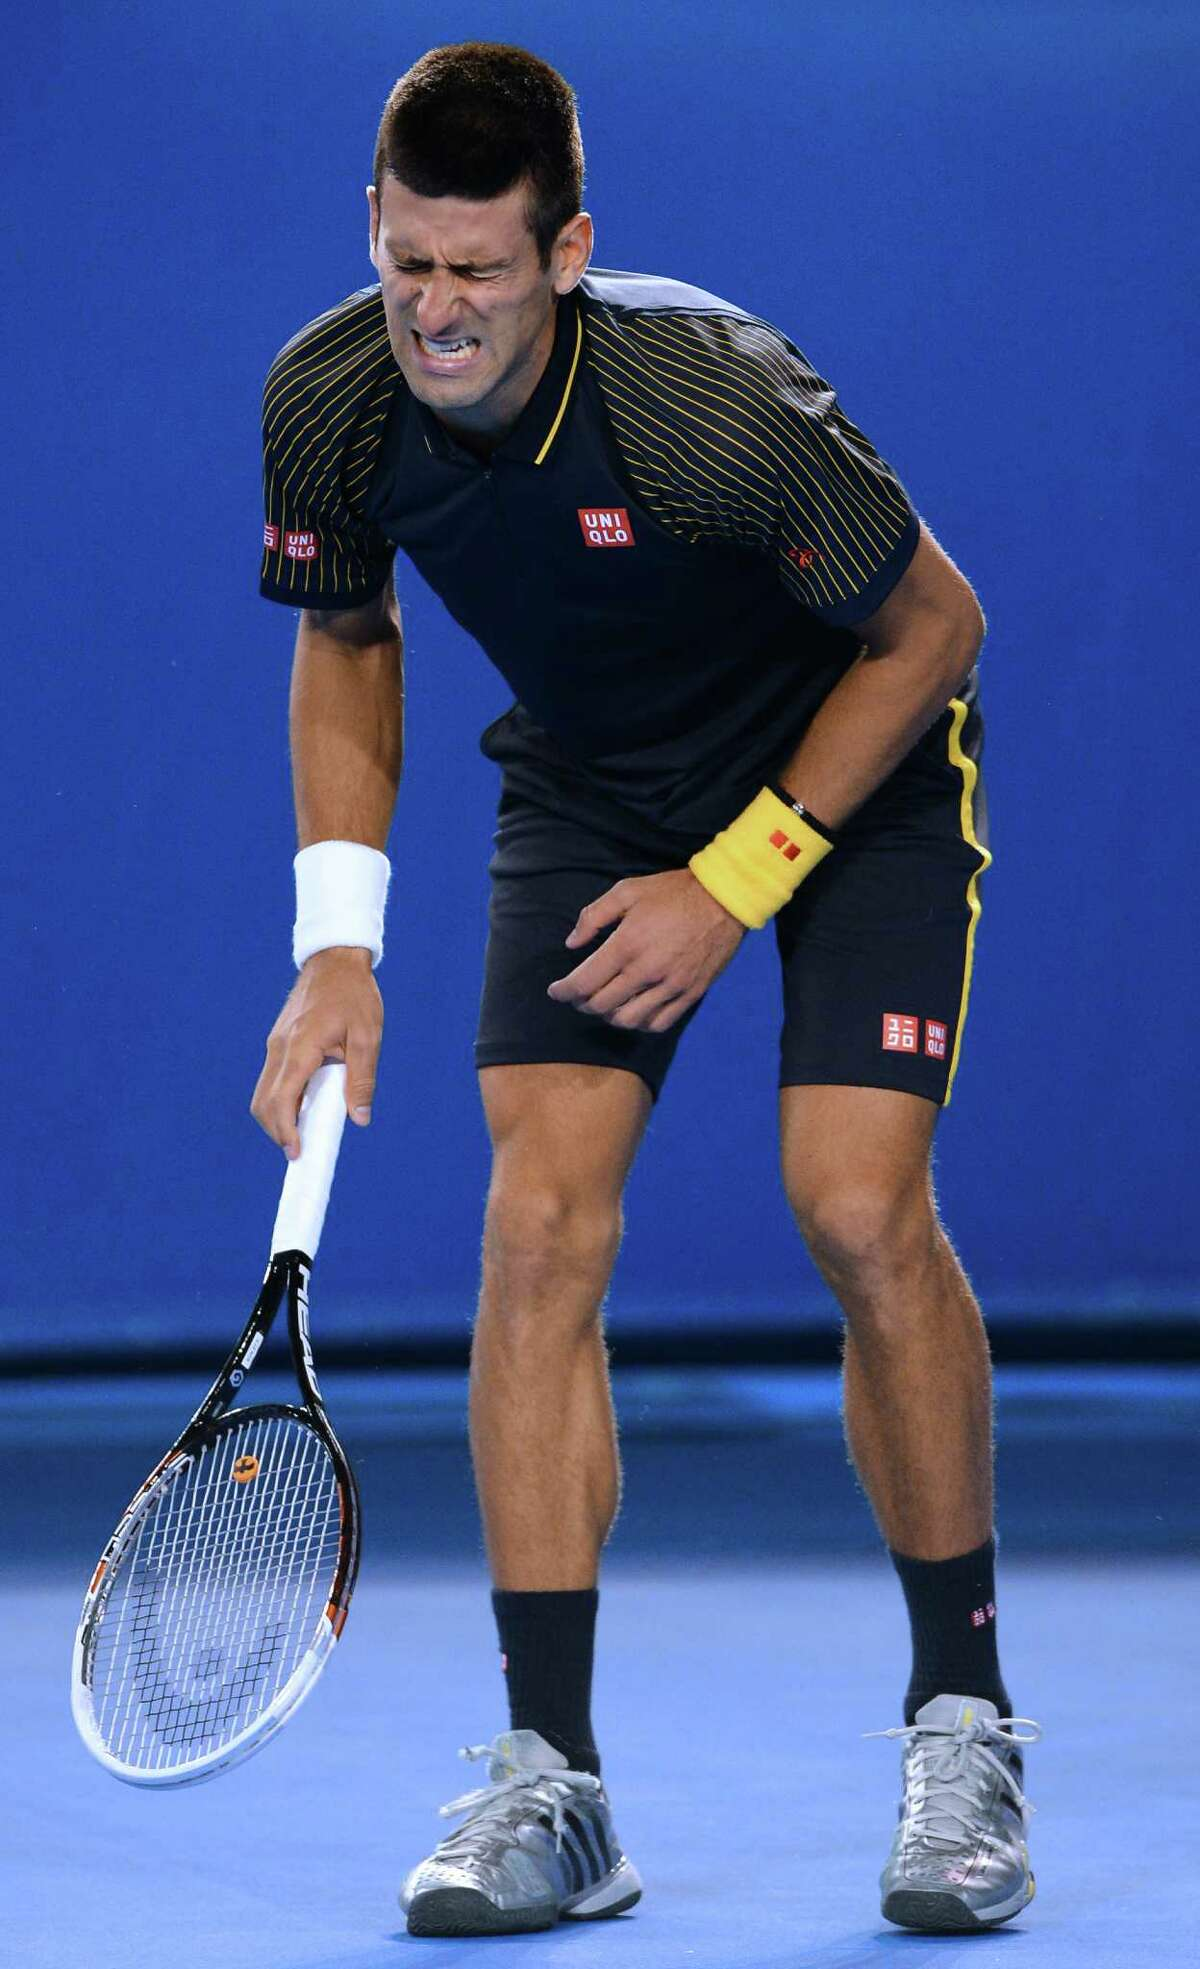 Novak Djokovic shows the strain of playing 5 hours and 2 minutes and winning.